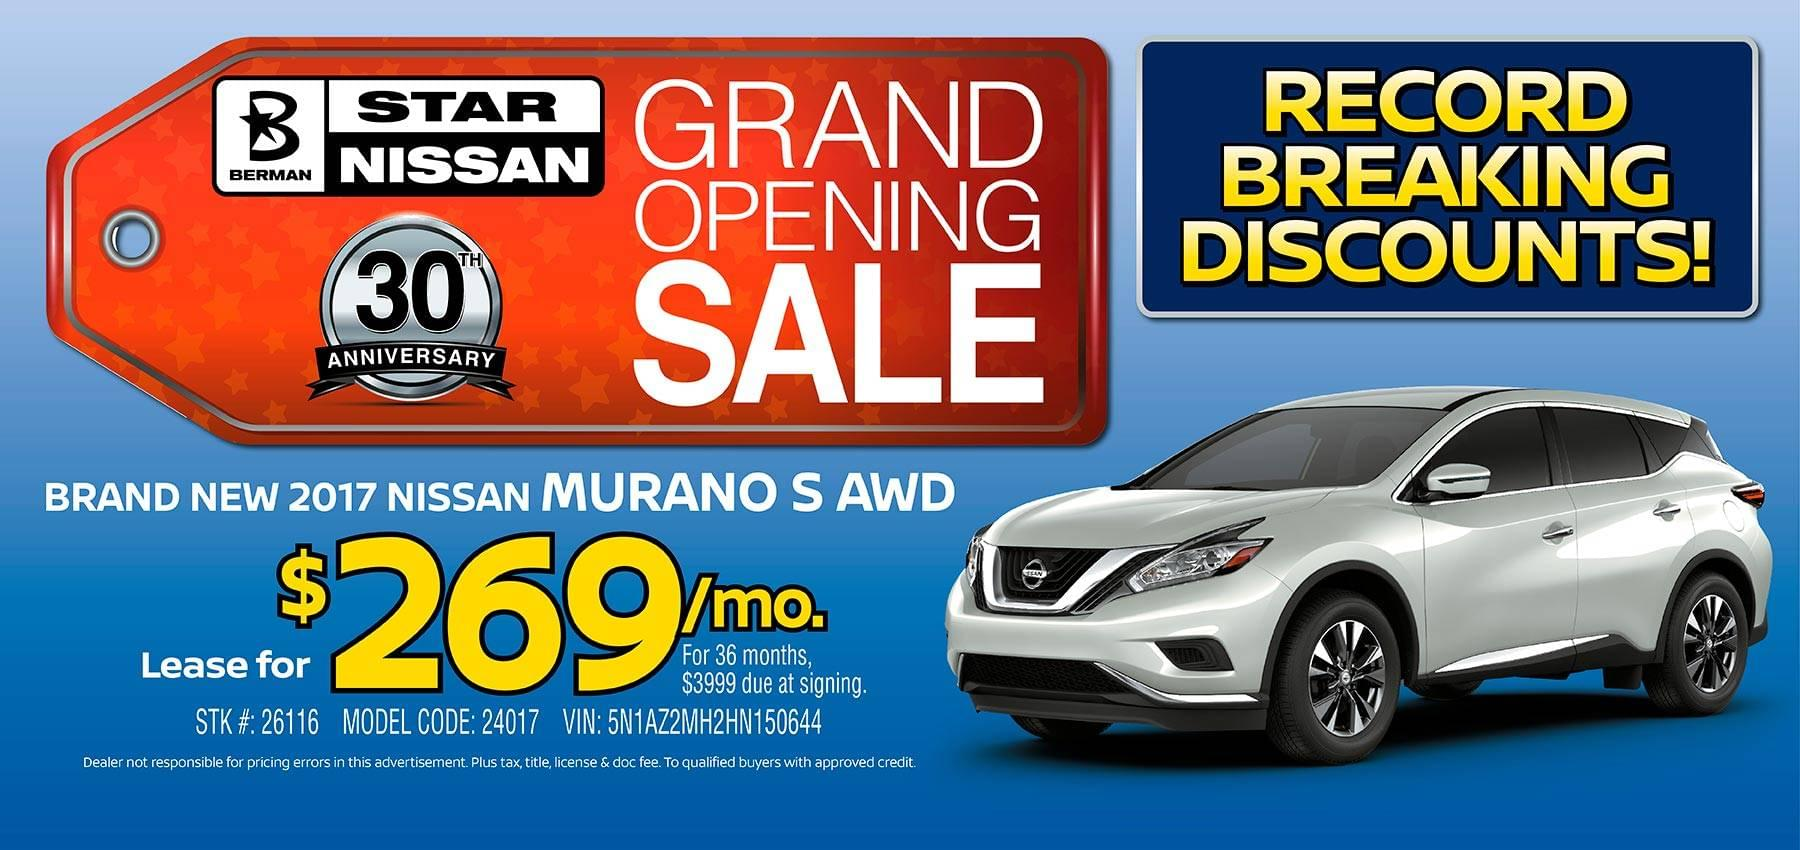 April Star Nissan Grand Opening Sale 2017 Nissan Murano Offer